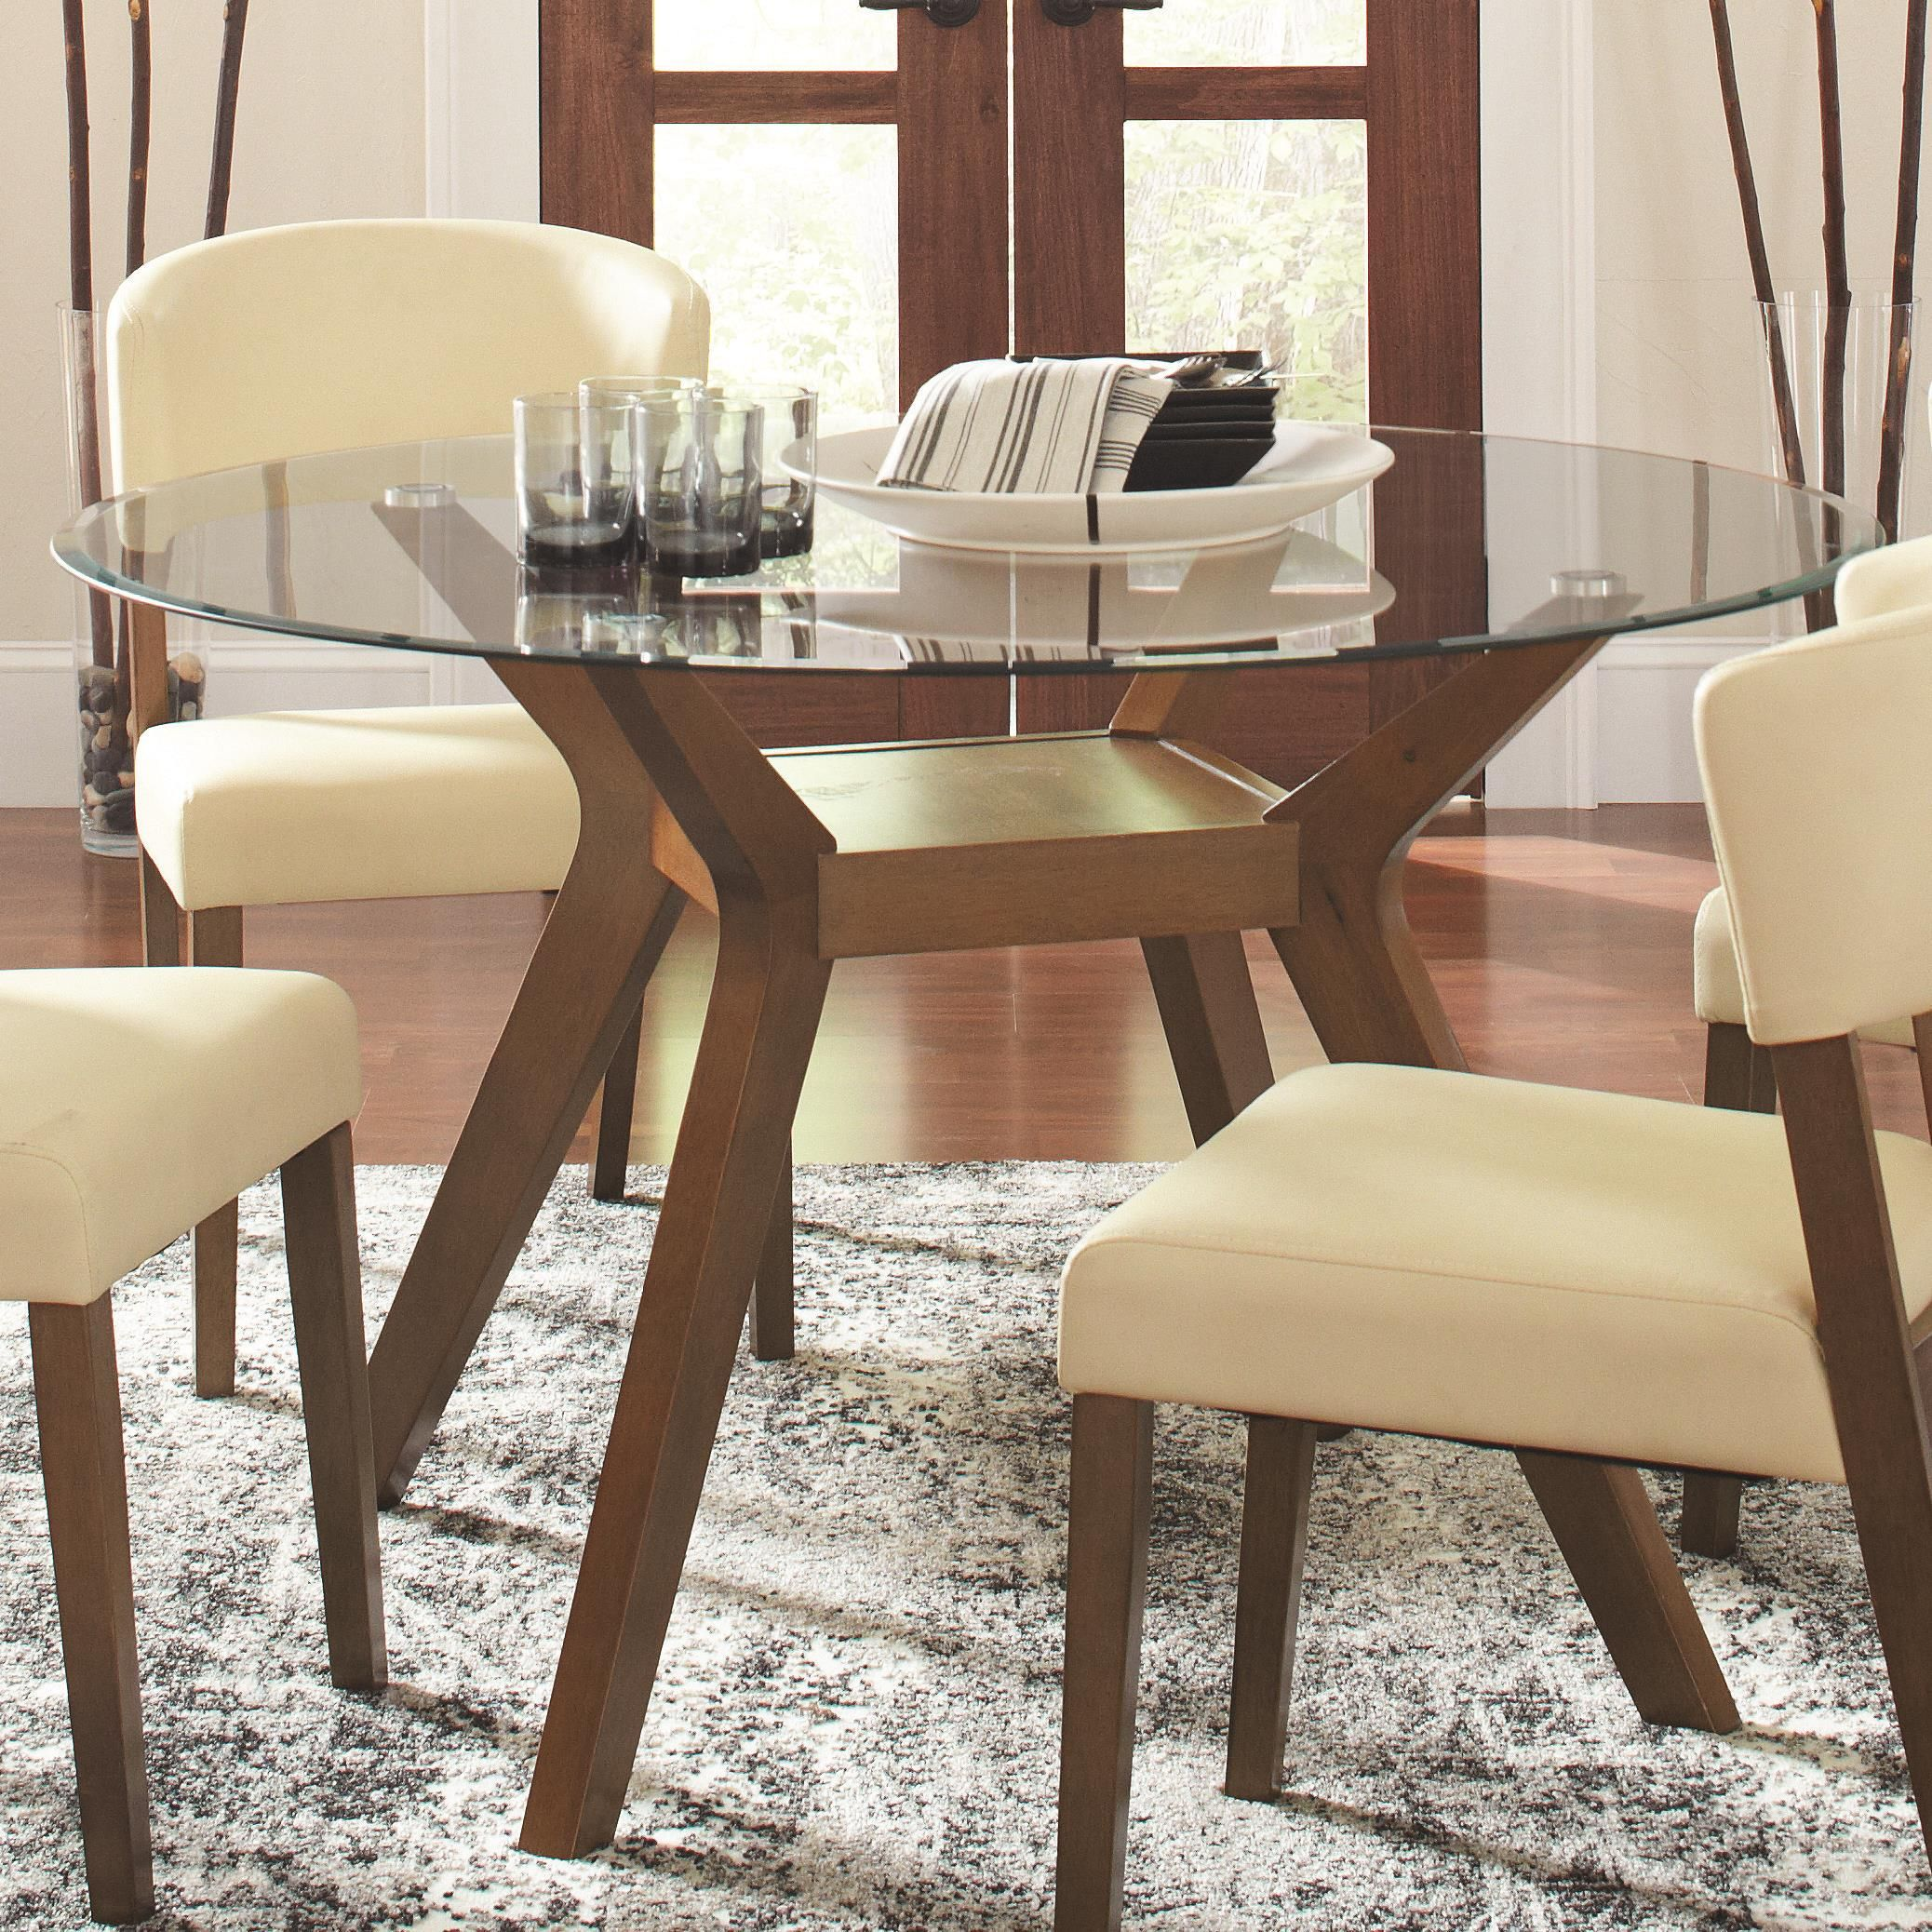 Modern Round Glass Dining Table Paxton Round Glass Dining Table